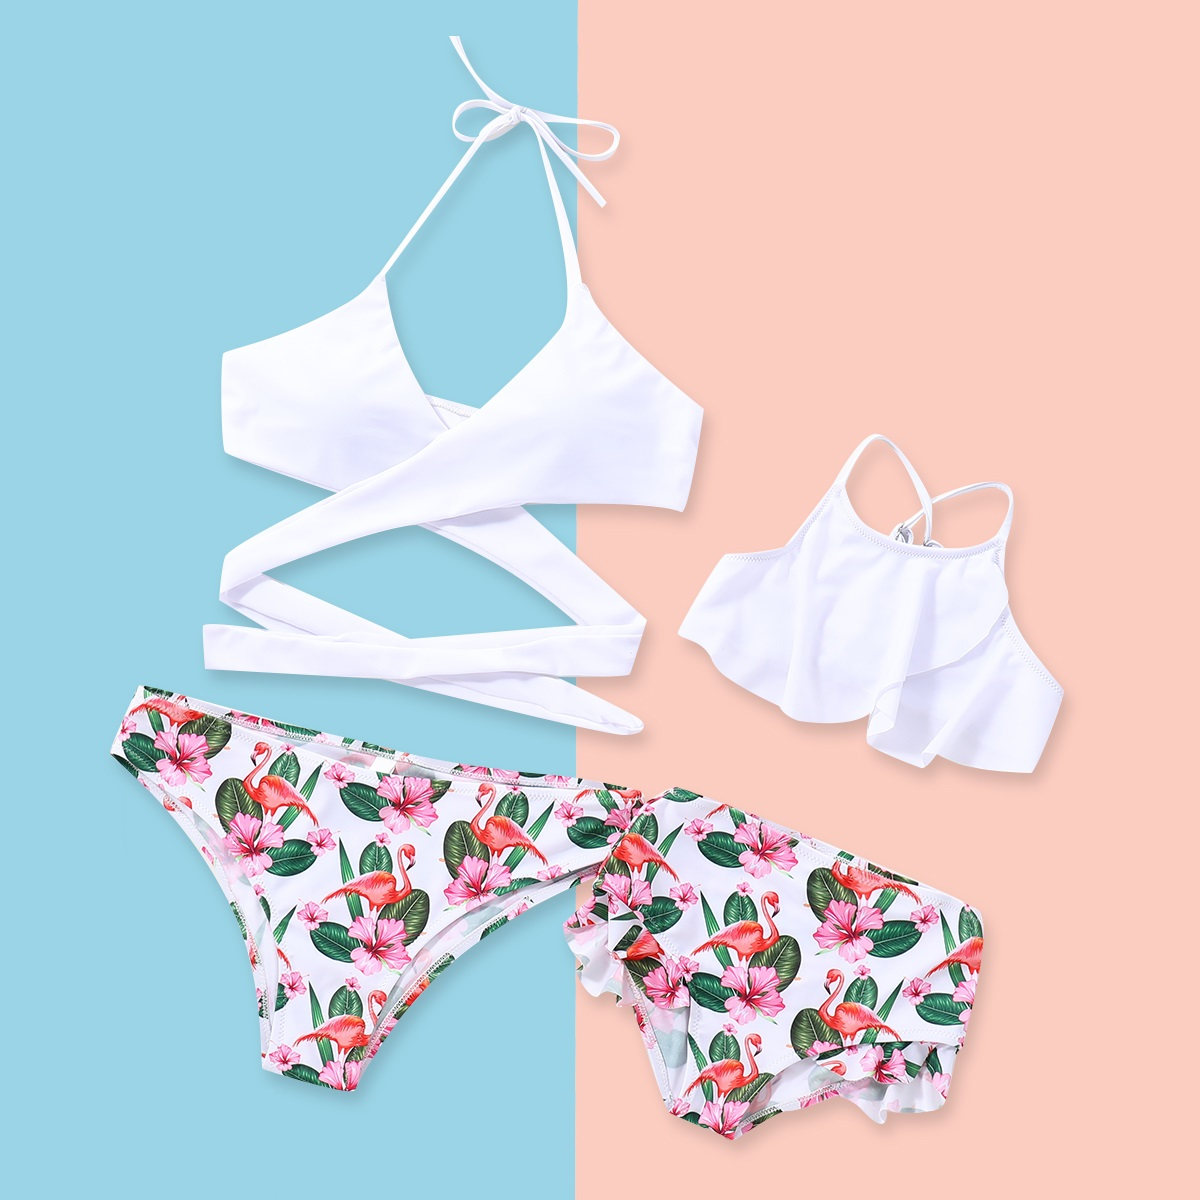 Family Swimsuits Mother Daughter Swimwear Mommy And Me Clothes Mom And Girls Matching Dress Look Flamingo Briefs Bikini Outfits